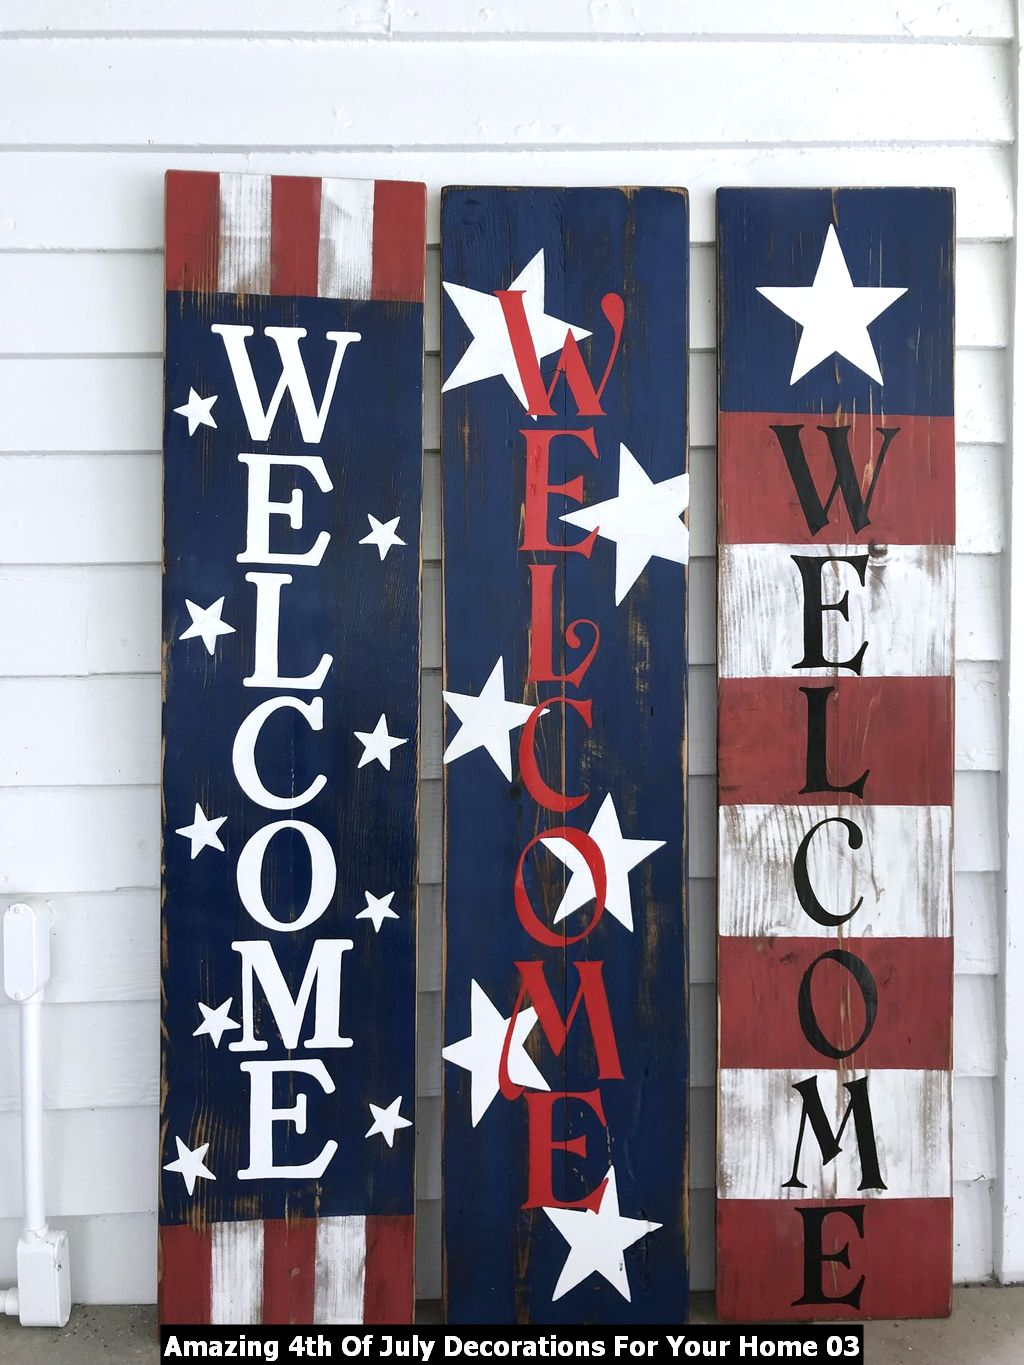 Amazing 4th Of July Decorations For Your Home 03